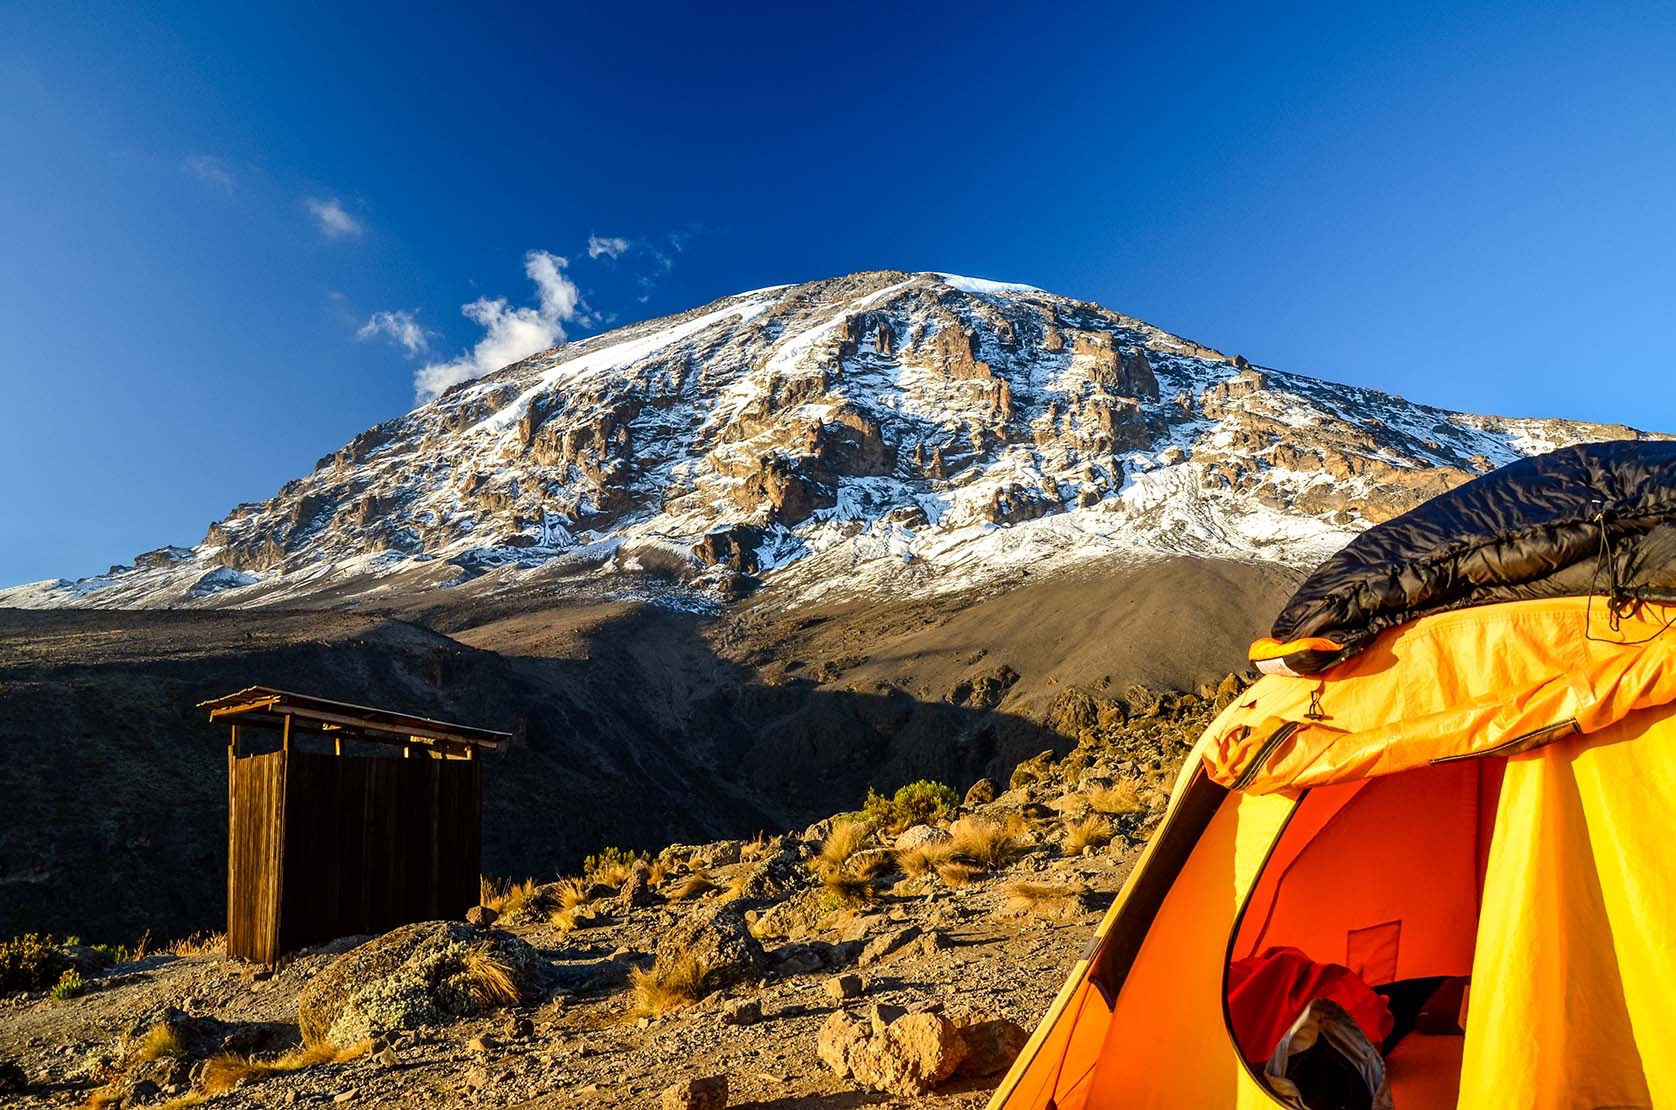 Kilimanjaro campsite and public toilet